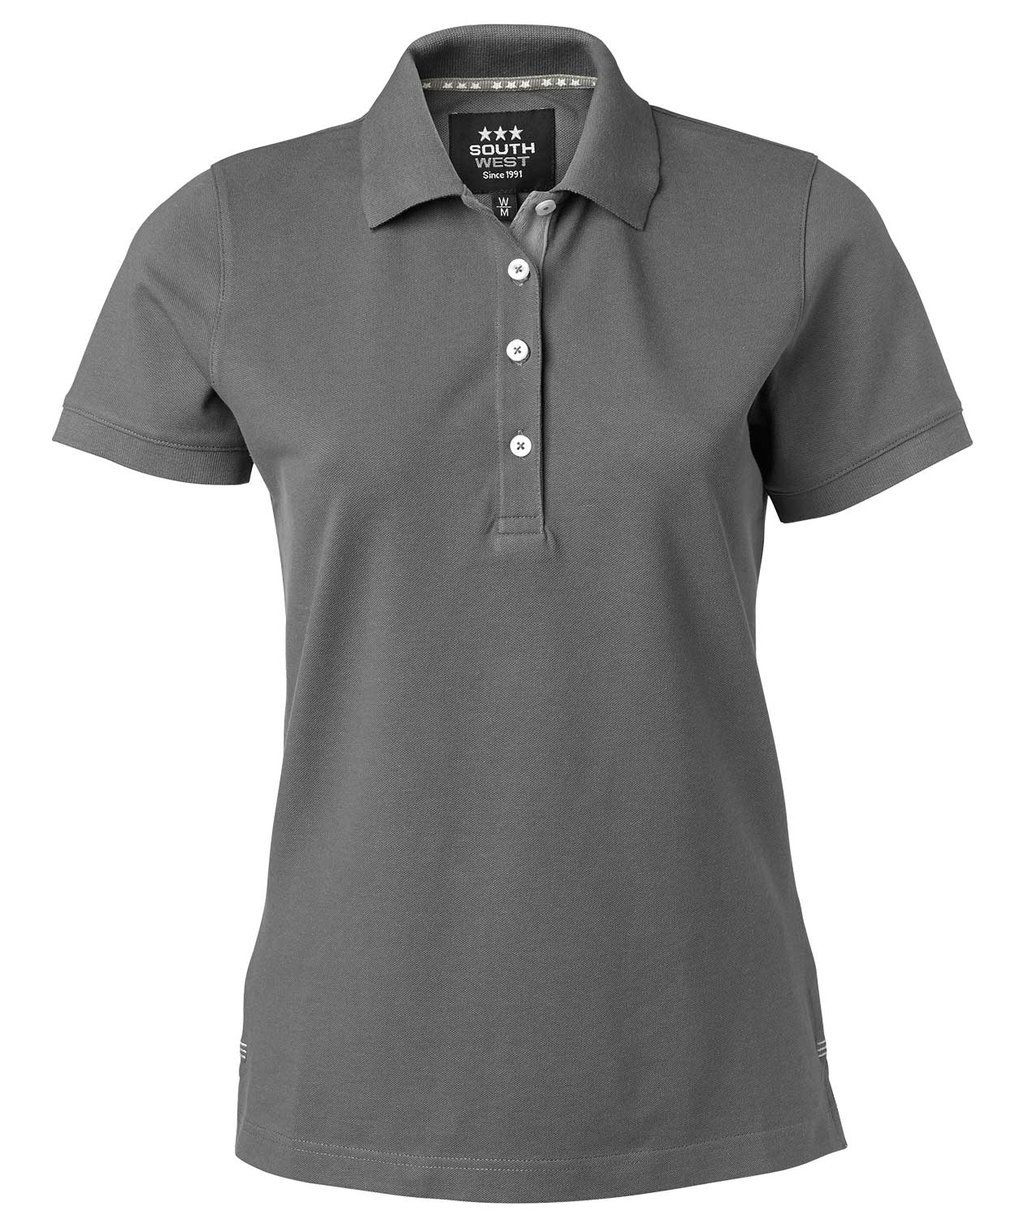 South West Marion dame polo T-shirt, Graphite